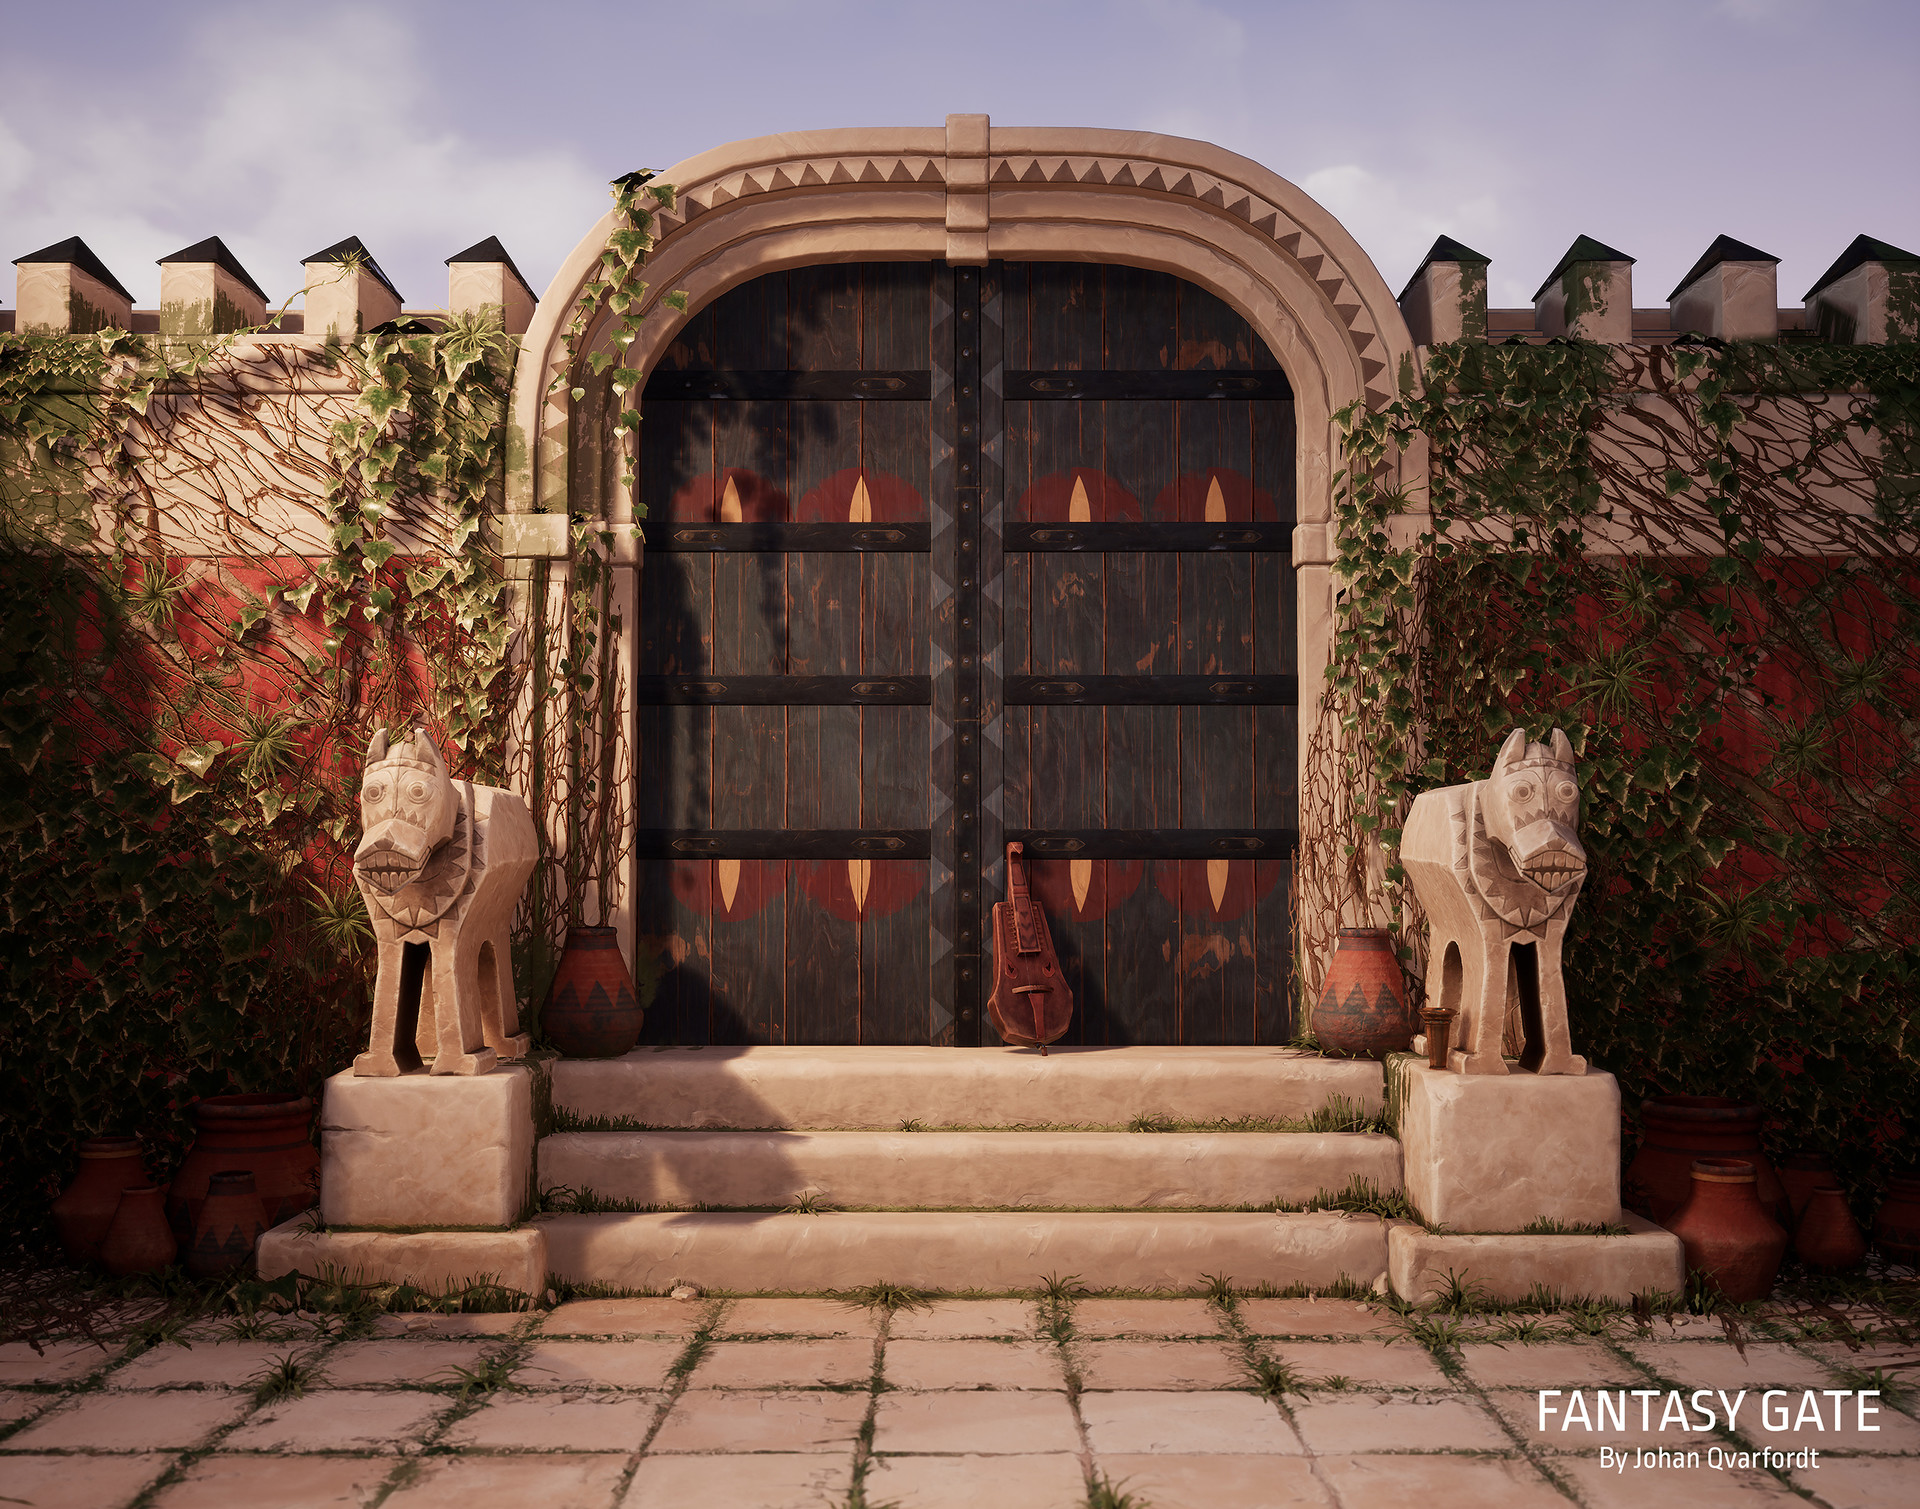 Johan qvarfordt fantasygate render 04 resized